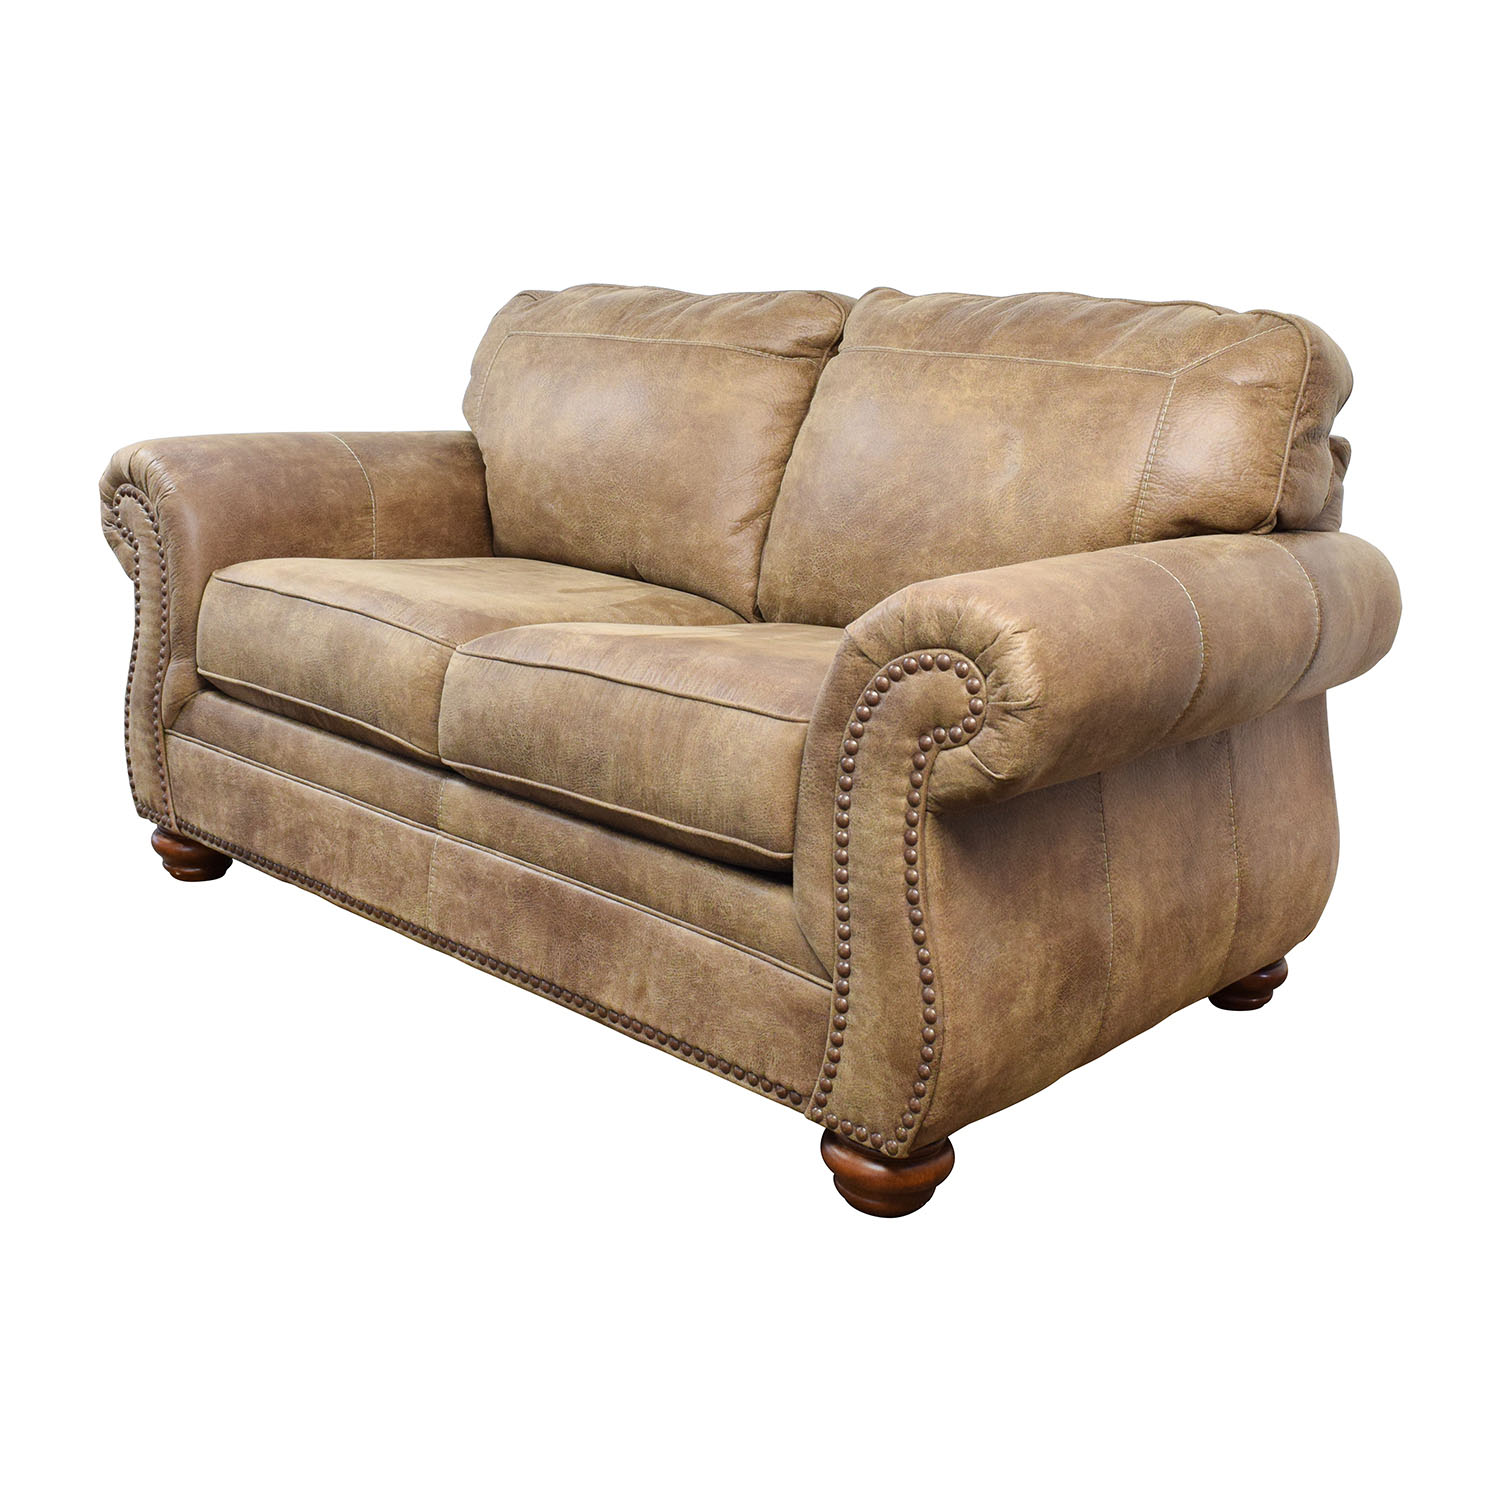 Signature Design By Ashley Signature Design By Ashley Tallow Faux Leather Loveseat Nj